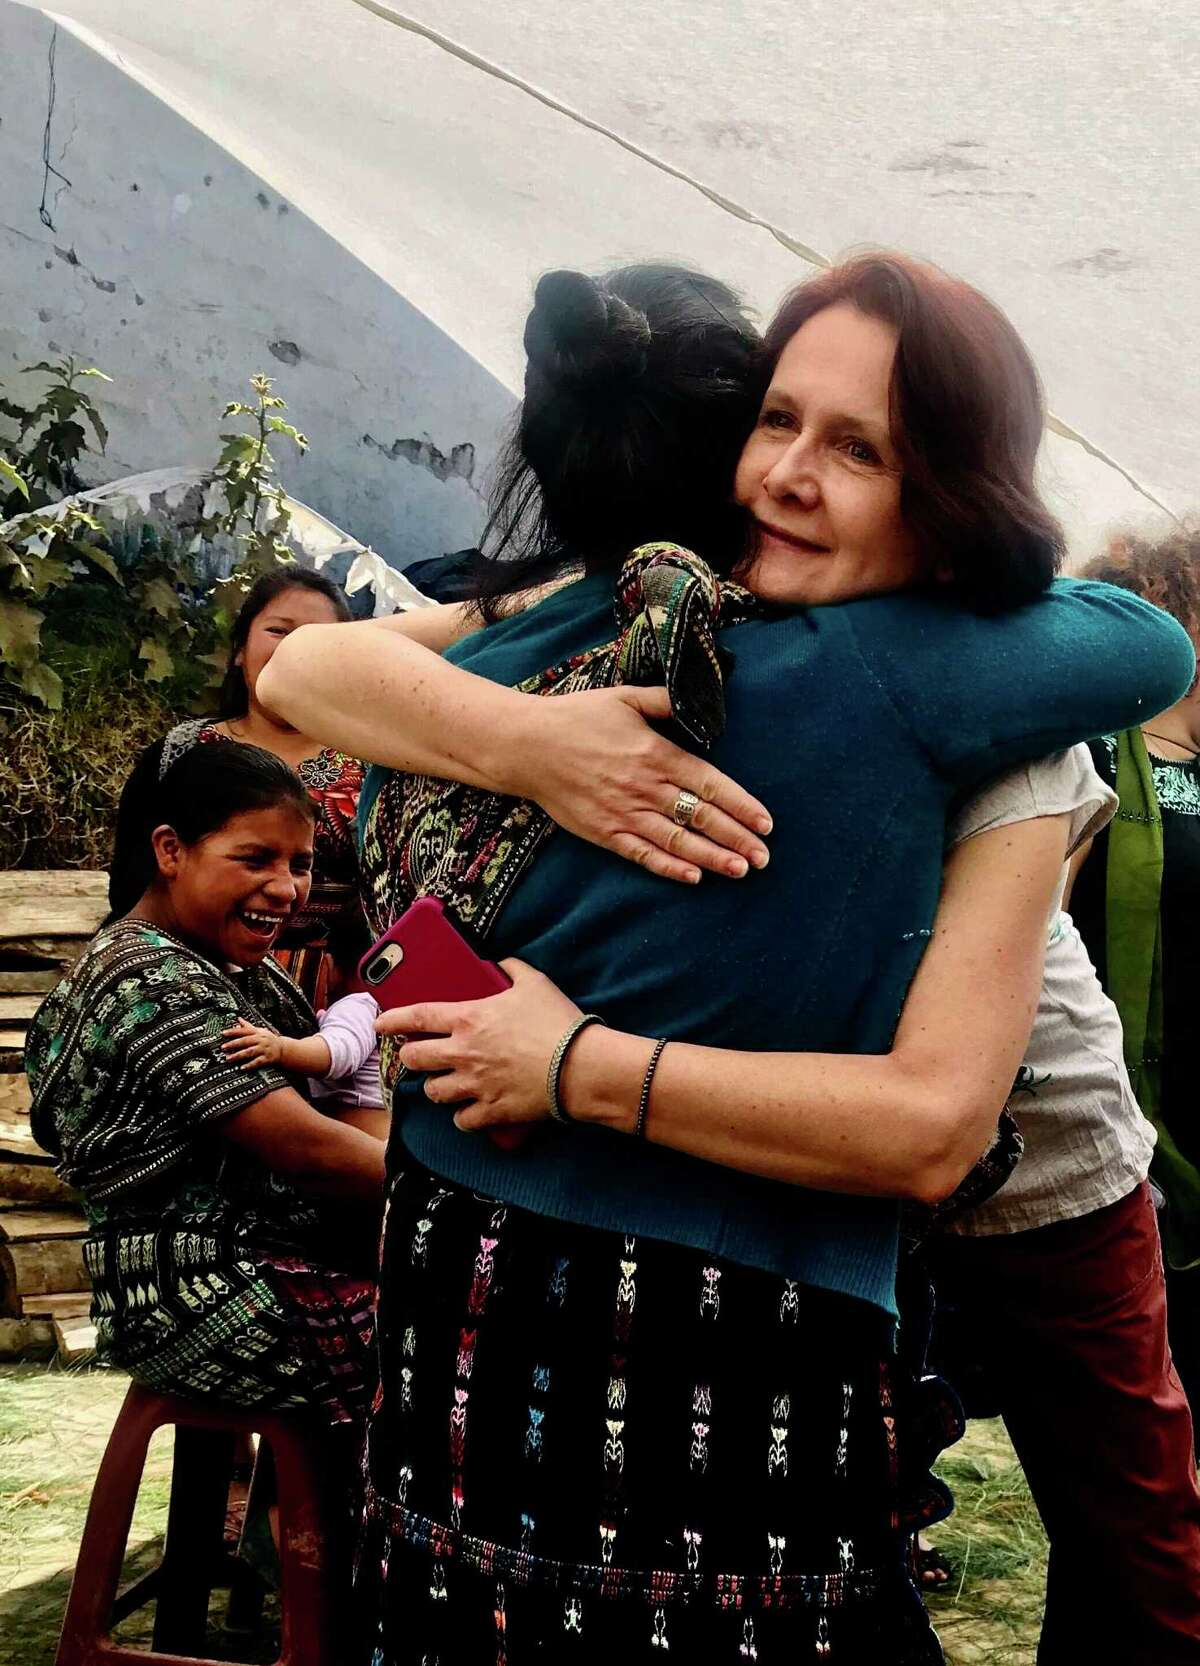 Siena College Professor Vera Eccarius-Kelly gives a hug to a young Mayan woman inLa Fe, Guatemala on a trip with student researchers fromFebruary 23-March 4, 2019. Kelly is on the board of Mayan Hands, an Albany-based non-profit organization economically empowering Mayan women in Guatemala.